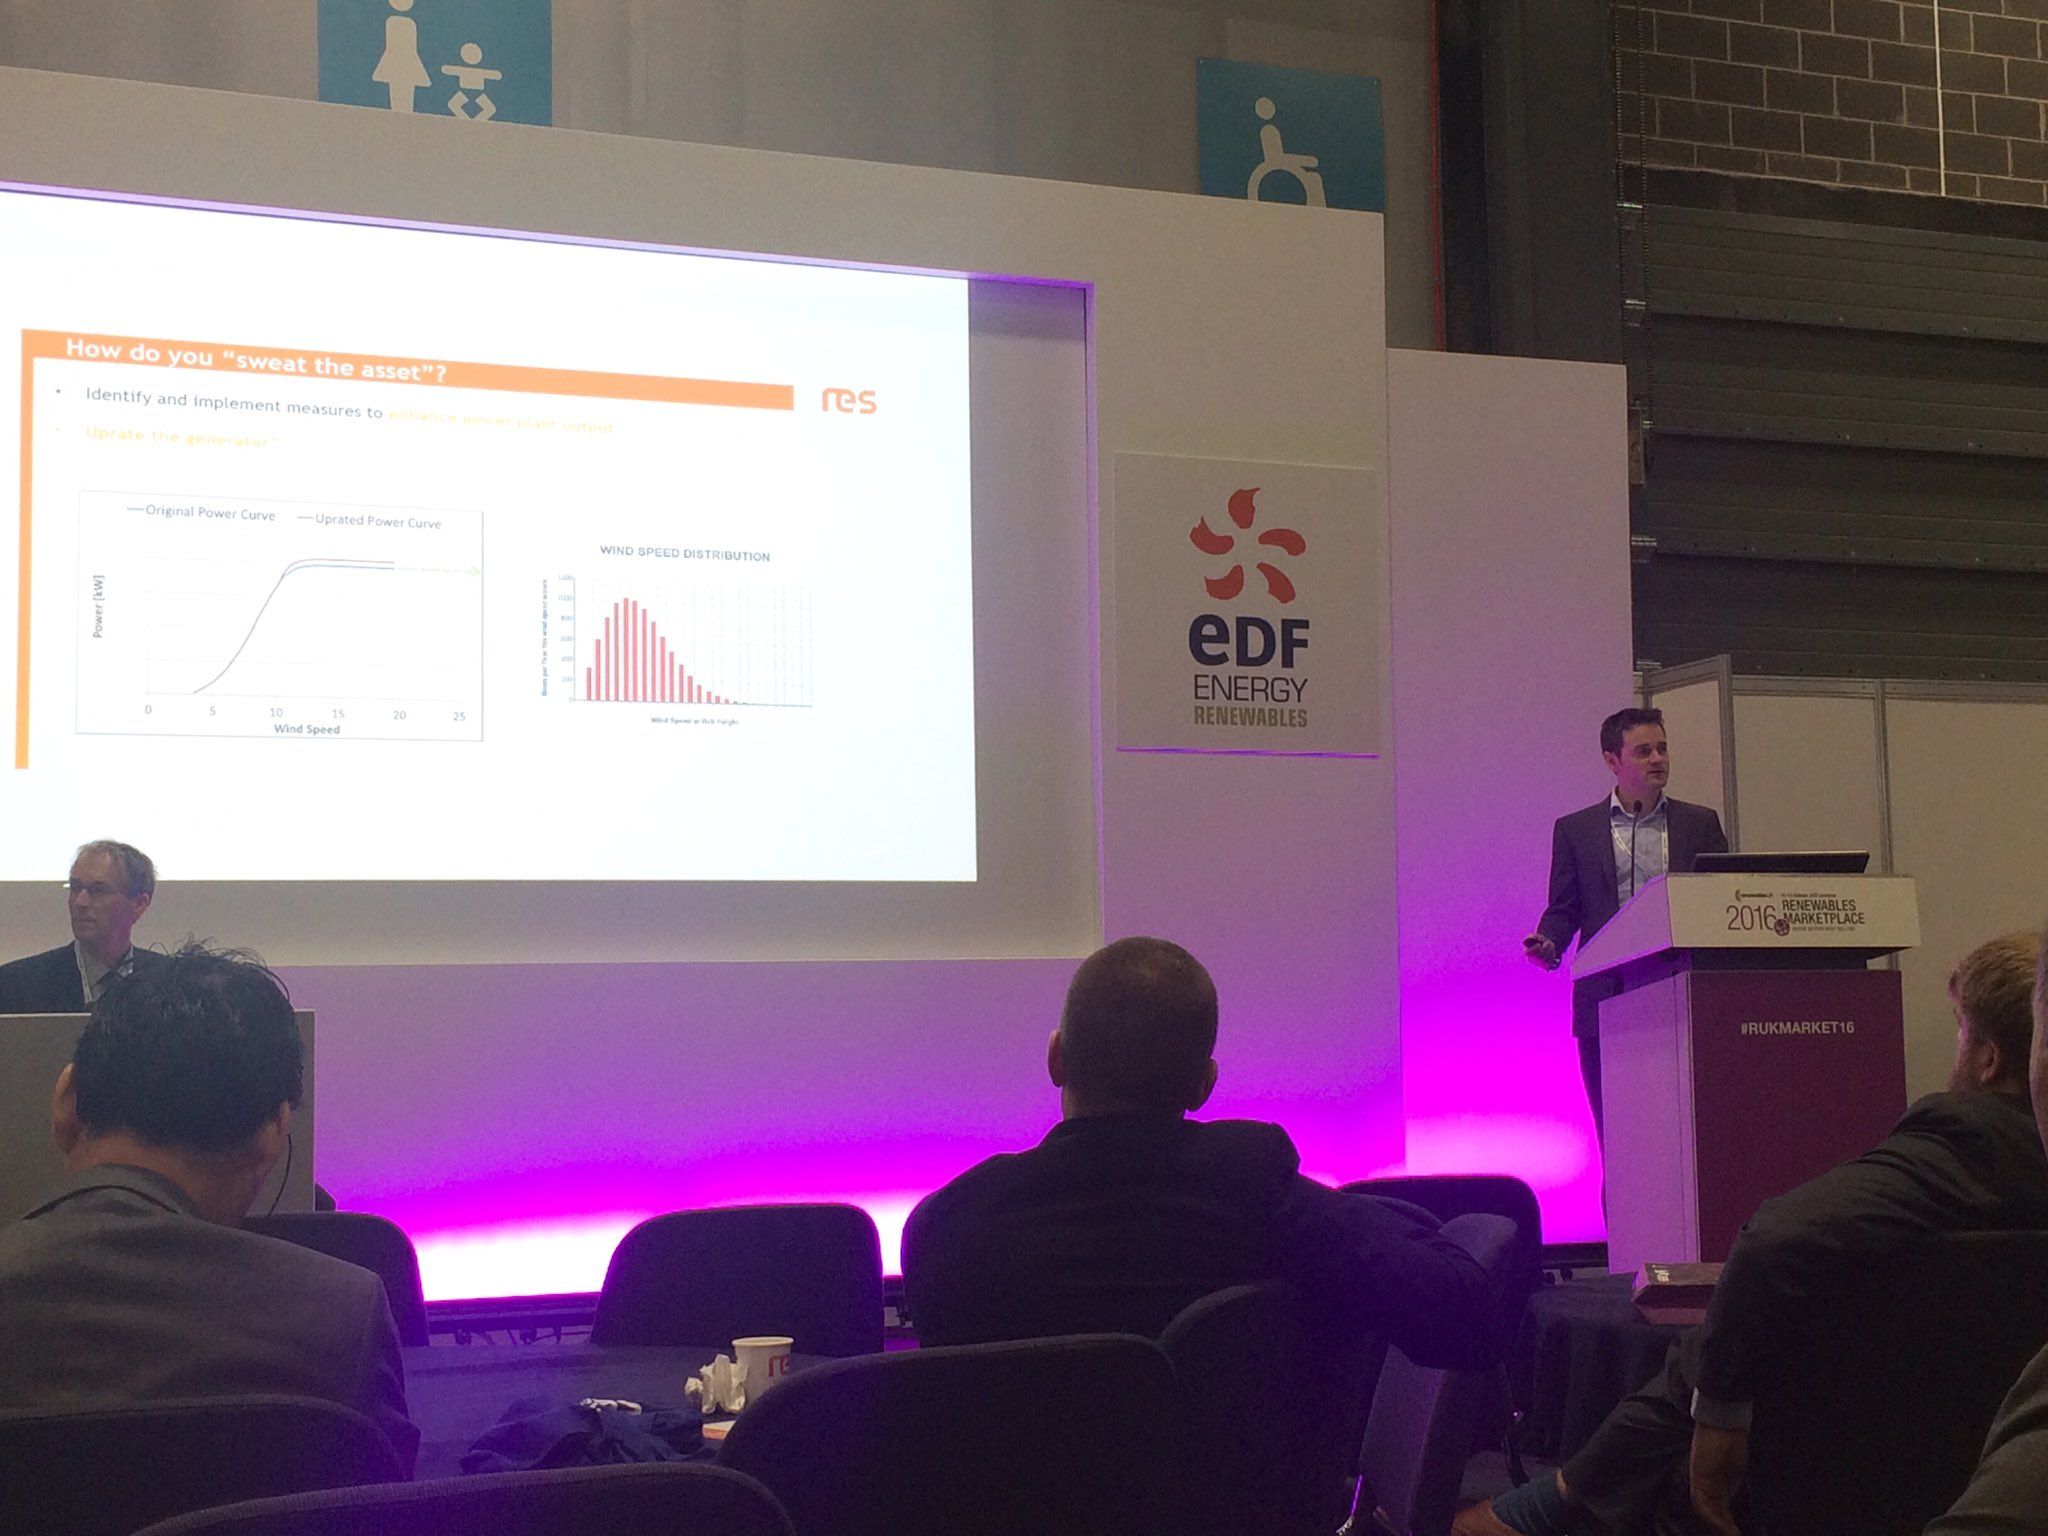 Jamie Scurlock @RESGroup talks about increasing asset value and working with OEMs @RUKEvents #RUKMARKET16 https://t.co/Z0tu2OuXNp